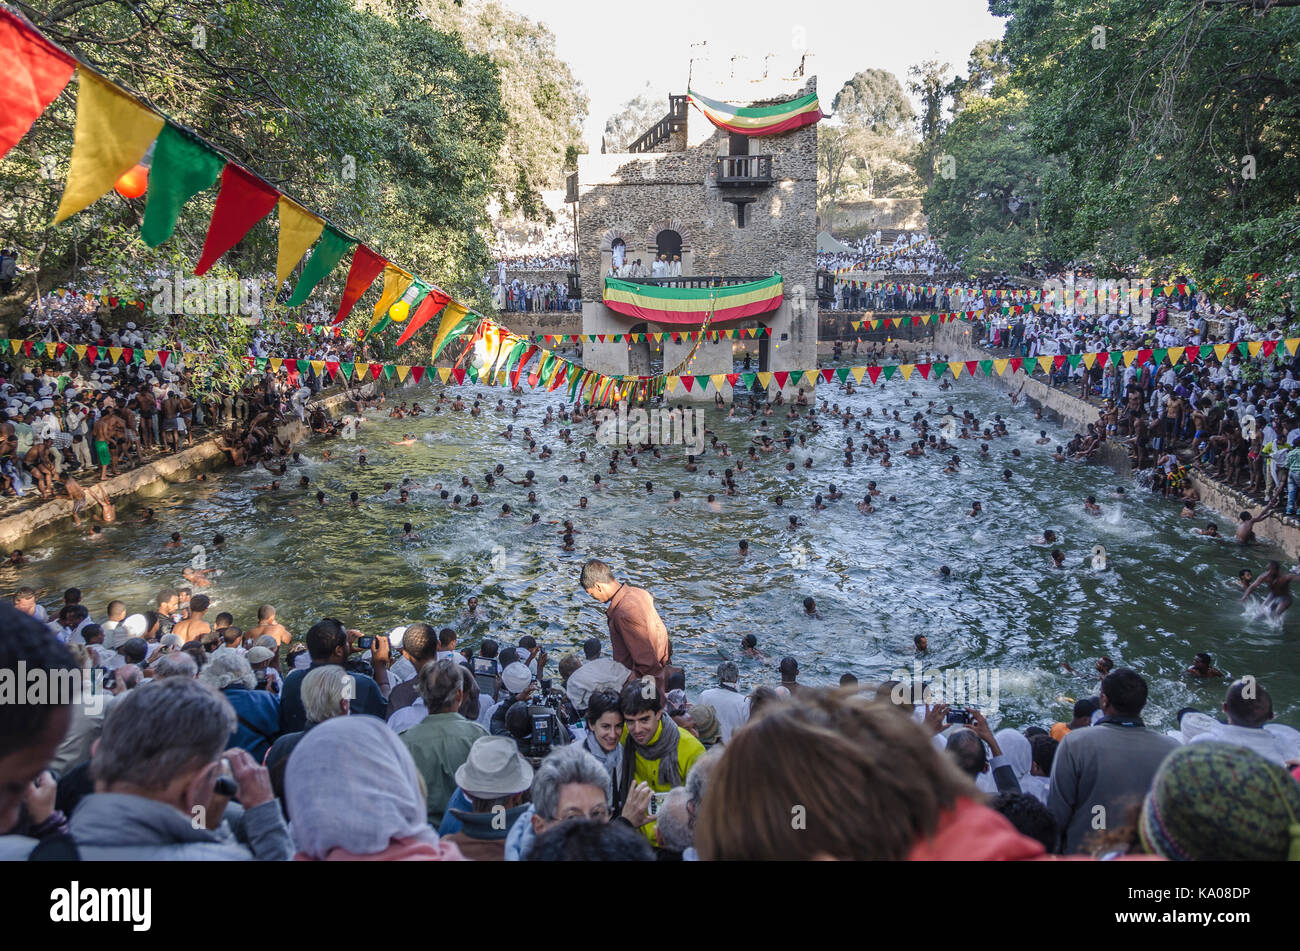 Crowd swimming in the Fasilides pond during a timkat ceremony in Gondar, Ethiopia - Stock Image